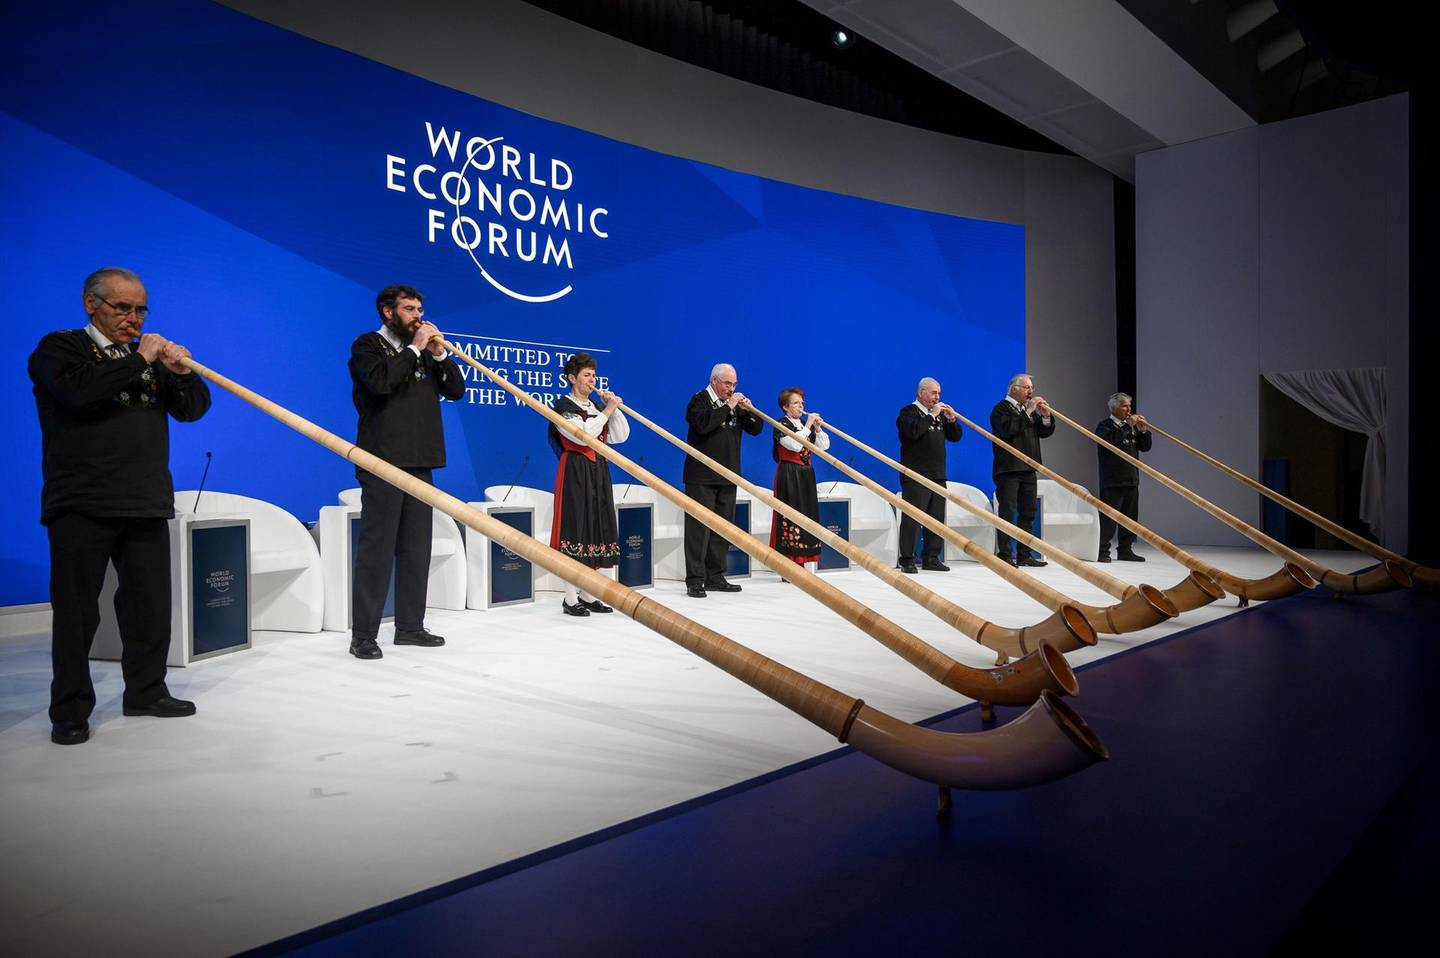 Alphorn blowers perform during the opening of the World Economic Forum (WEF) annual meeting, on January 22, 2019 in Davos, eastern Switzerland.  / AFP / Fabrice COFFRINI